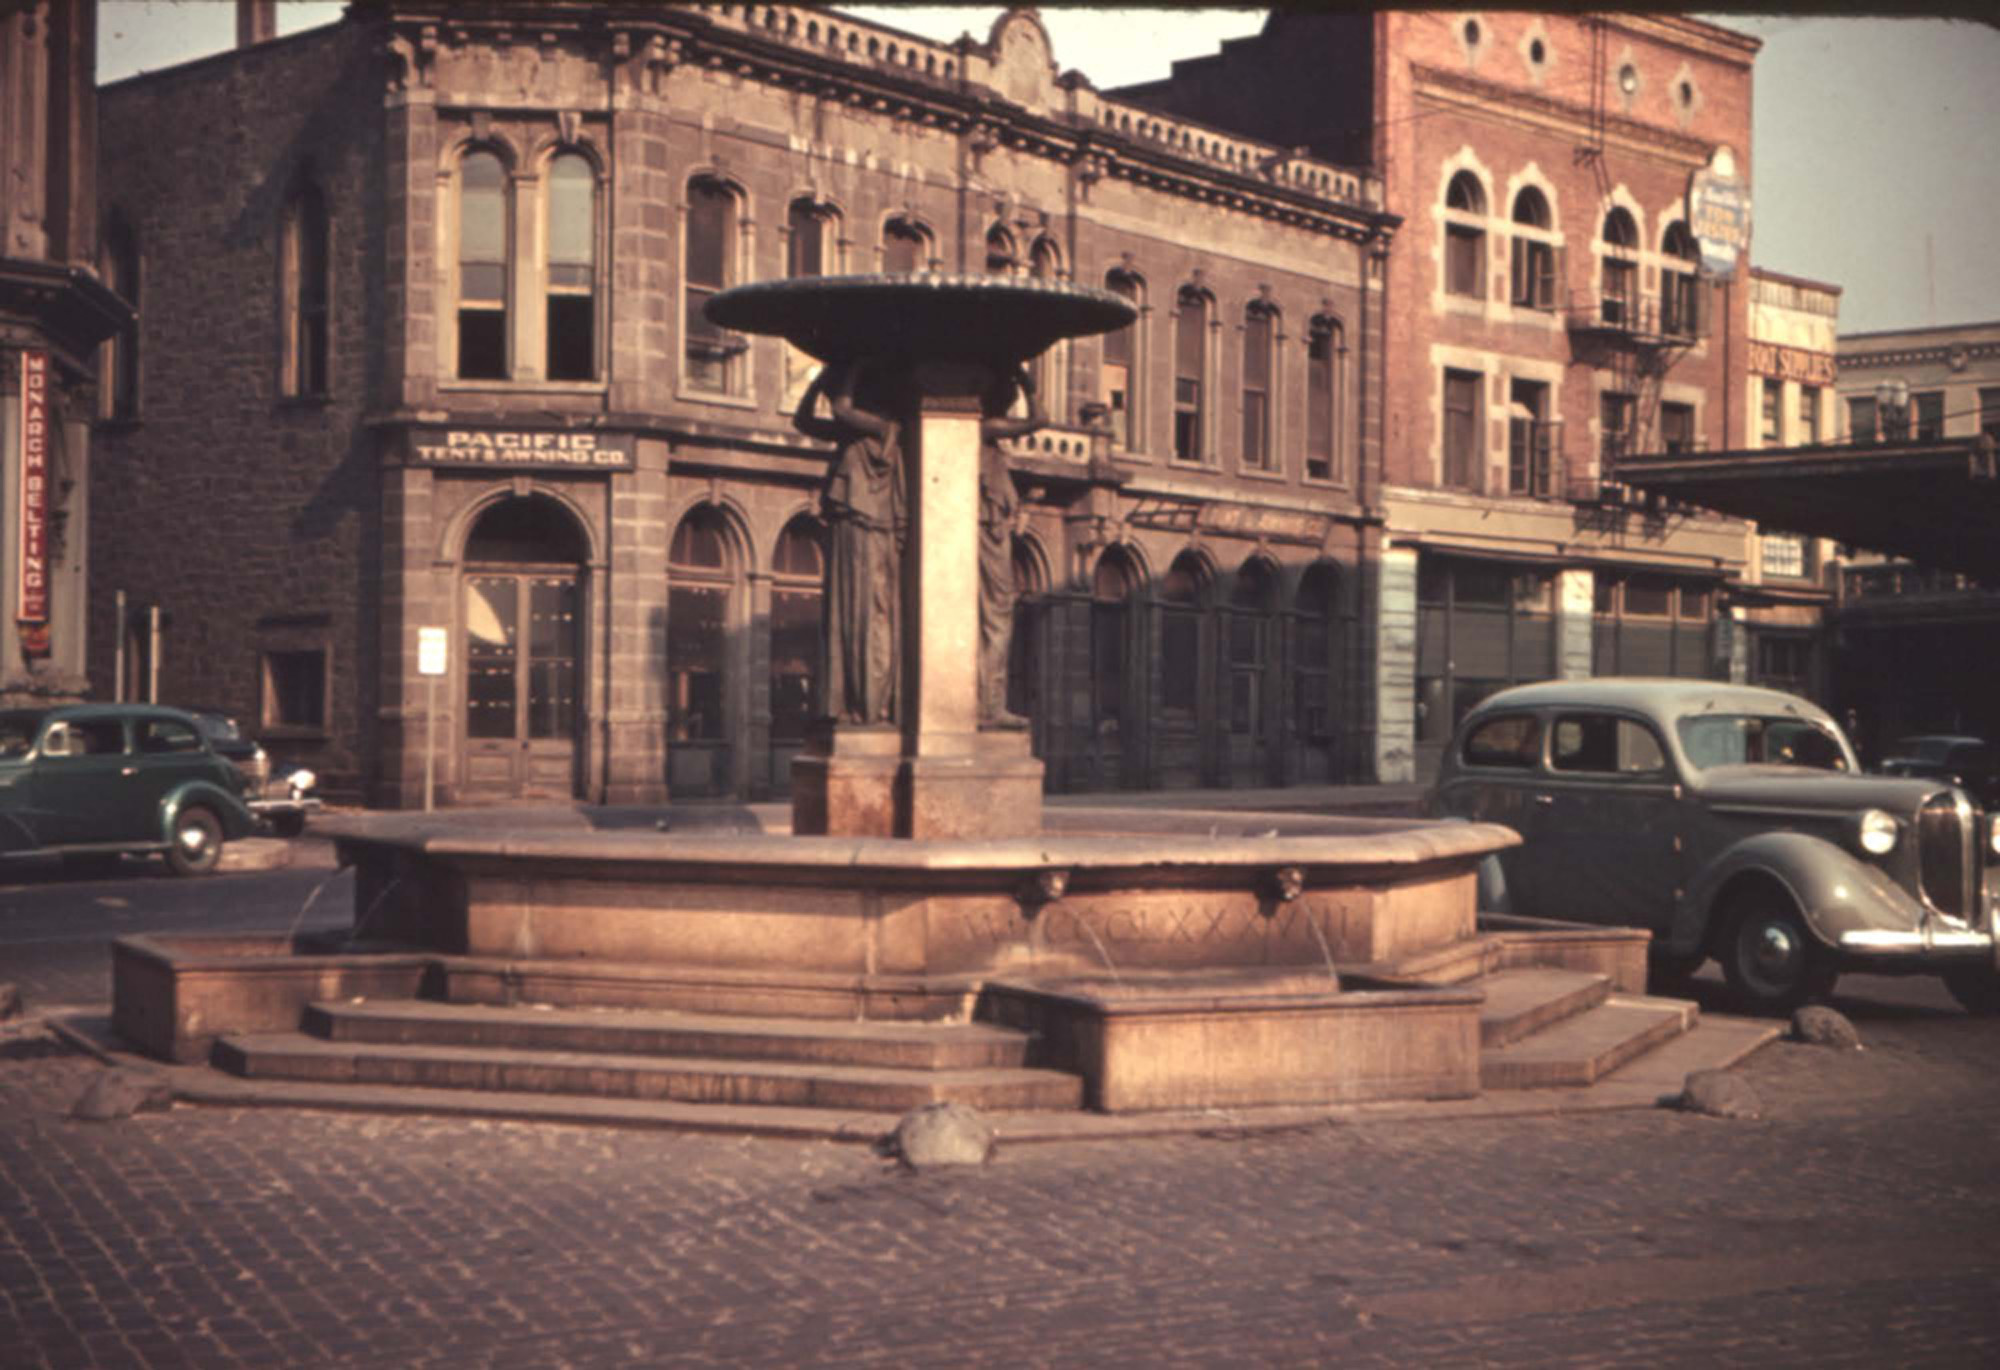 The fountain in 1939